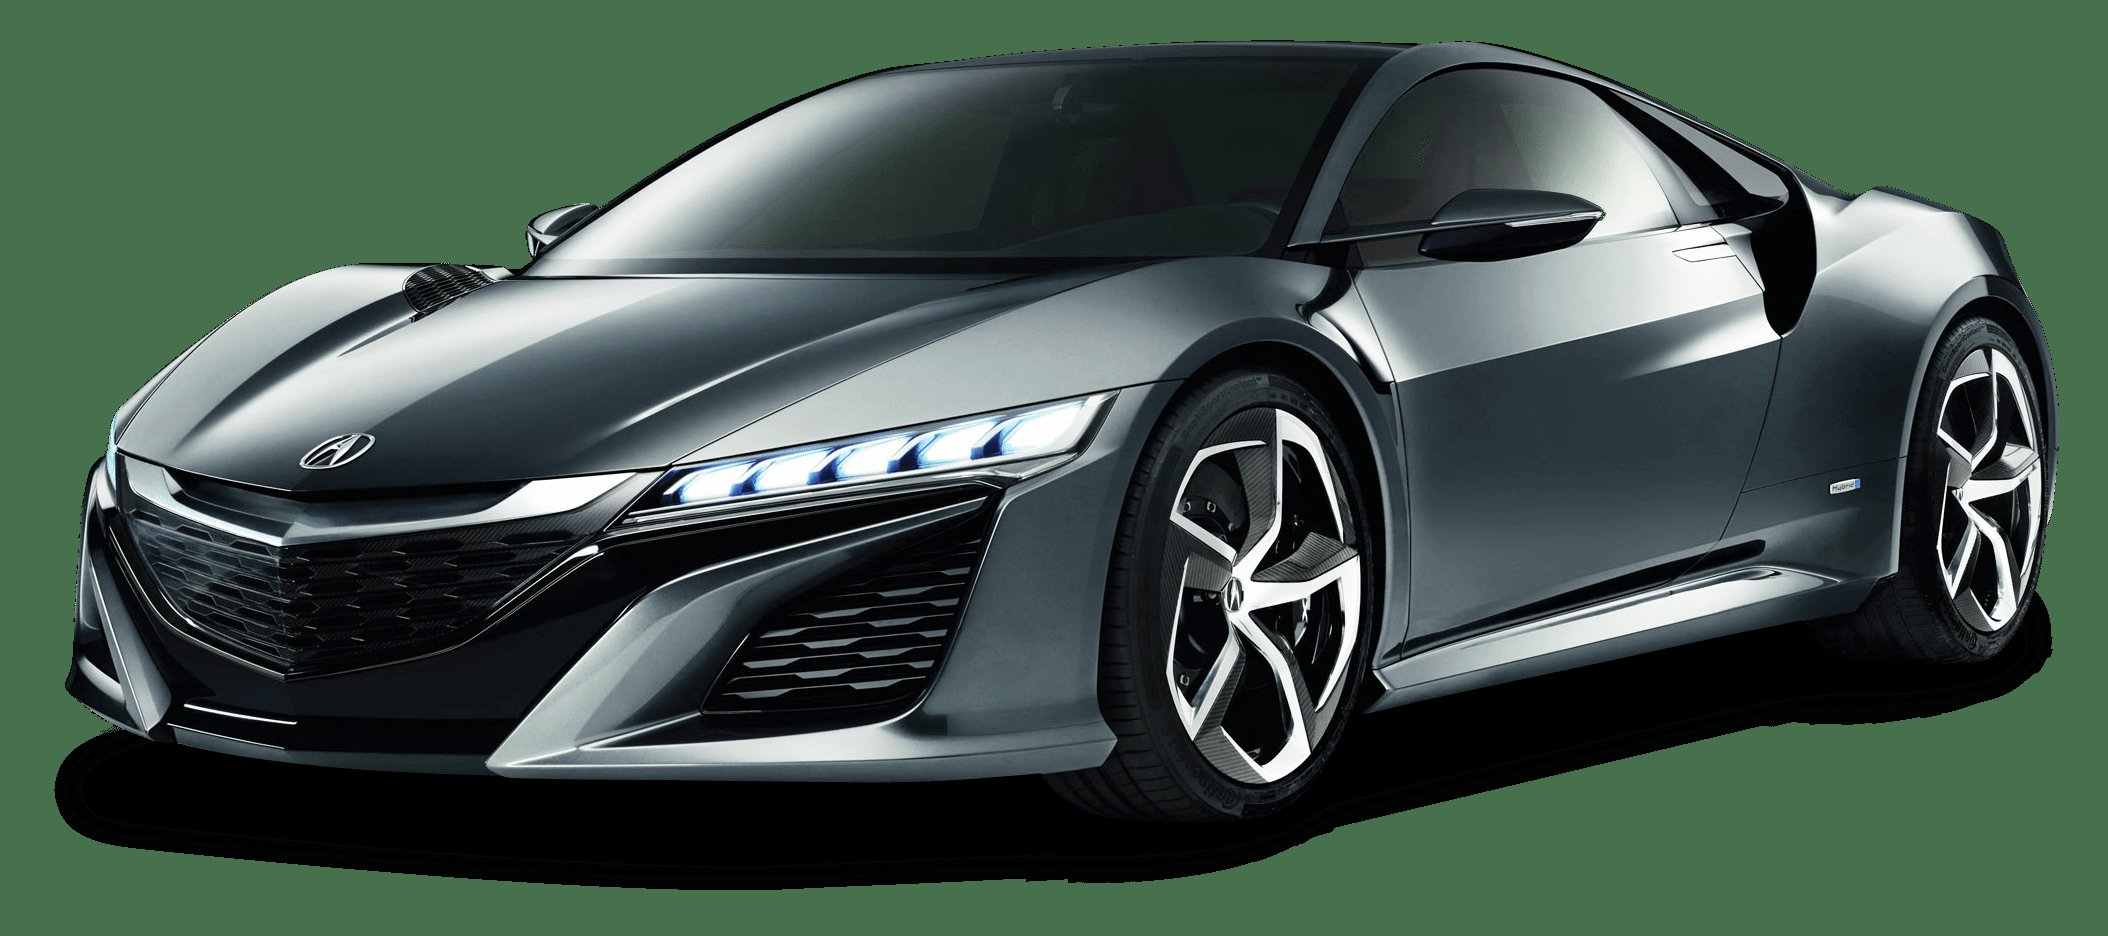 Latest Acura Nsx Car Png Image Pngpix Free Download